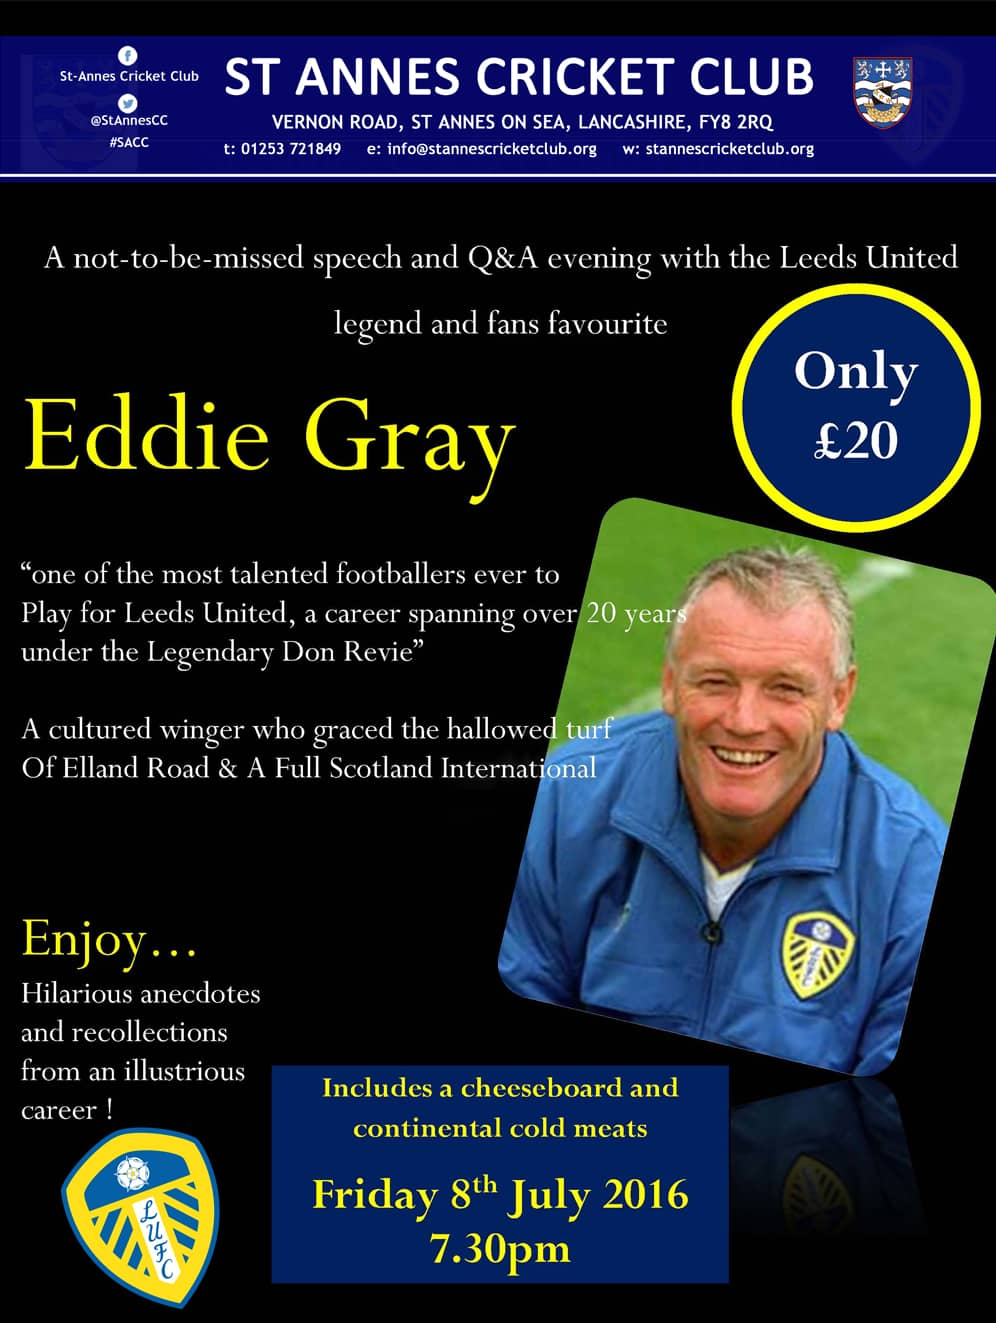 Eddie Gray Leeds United legend appearing on 8 July 2016 at St Annes CC